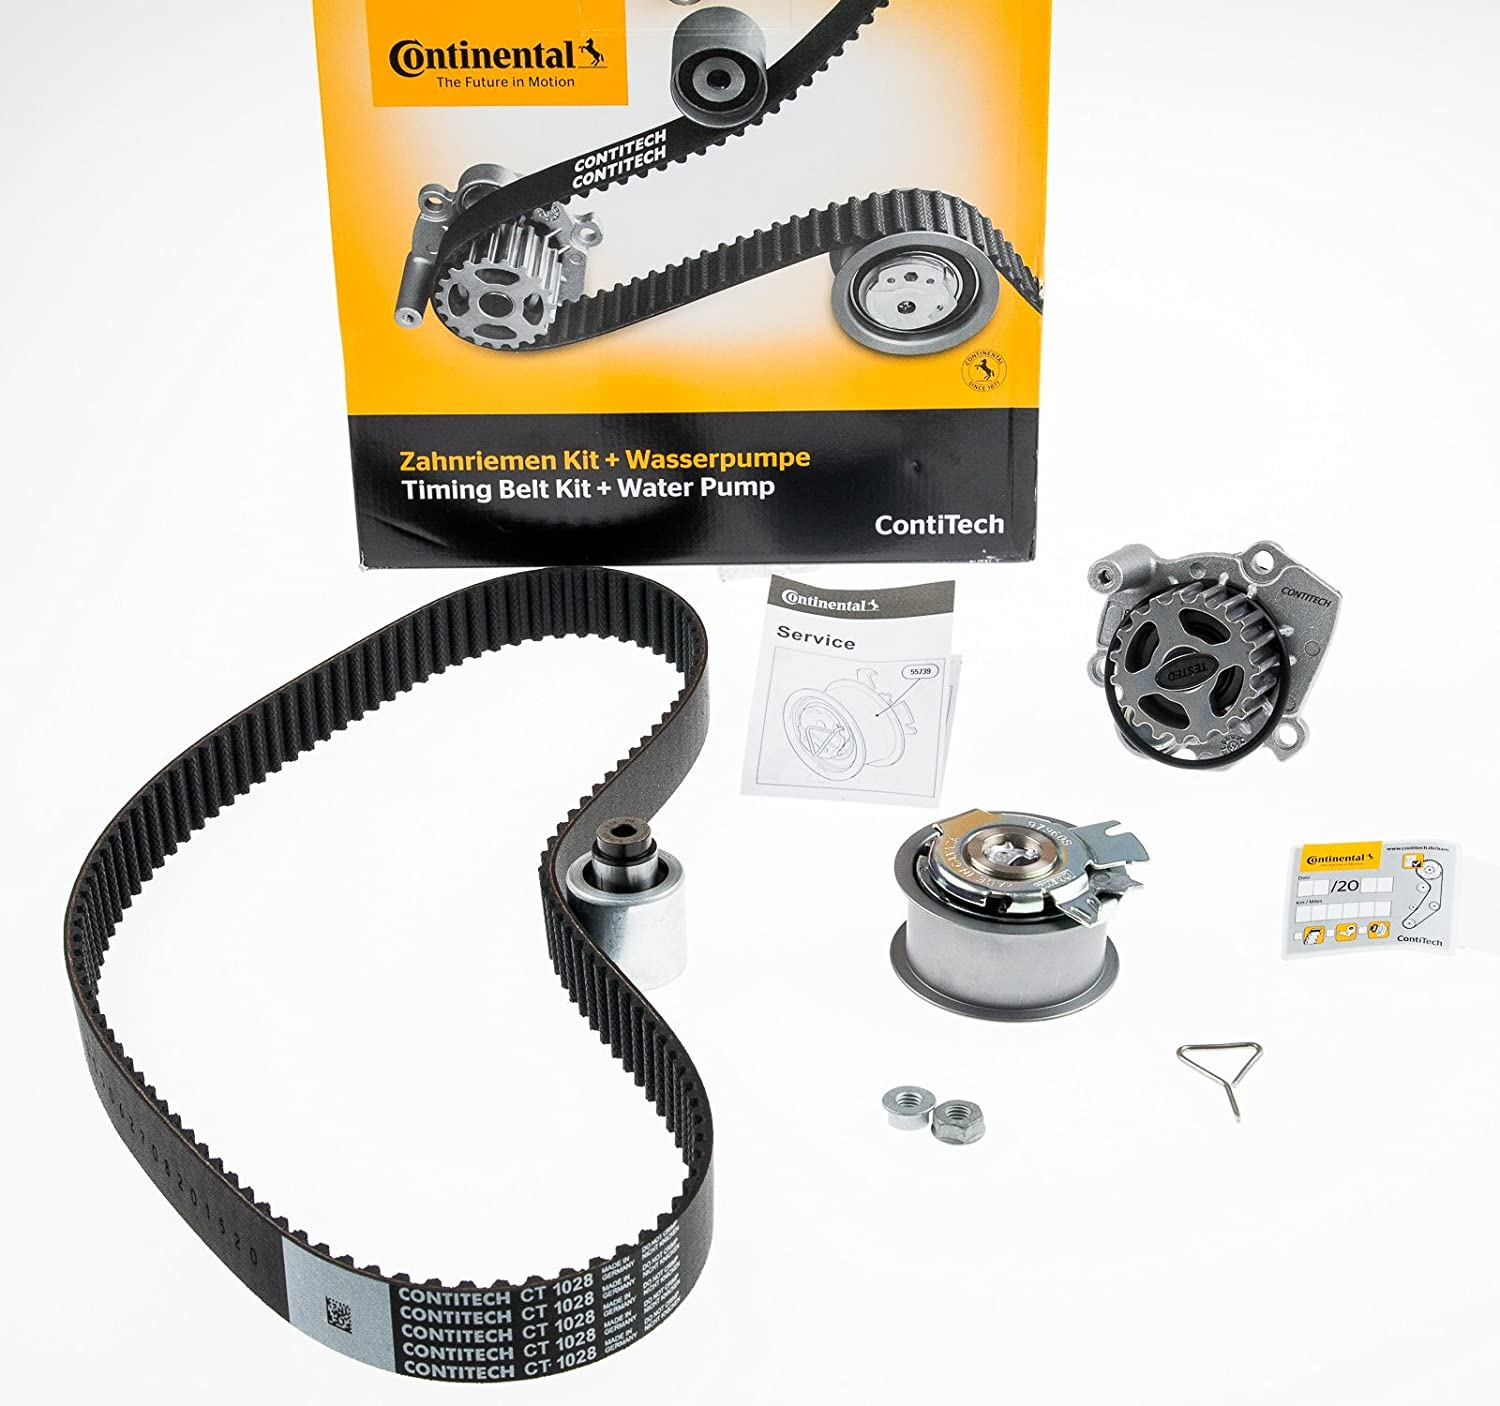 Contitech Ct1028wp3 Water Pump Timing Belt Kit Amazonco Outer Cover Car Motorbike